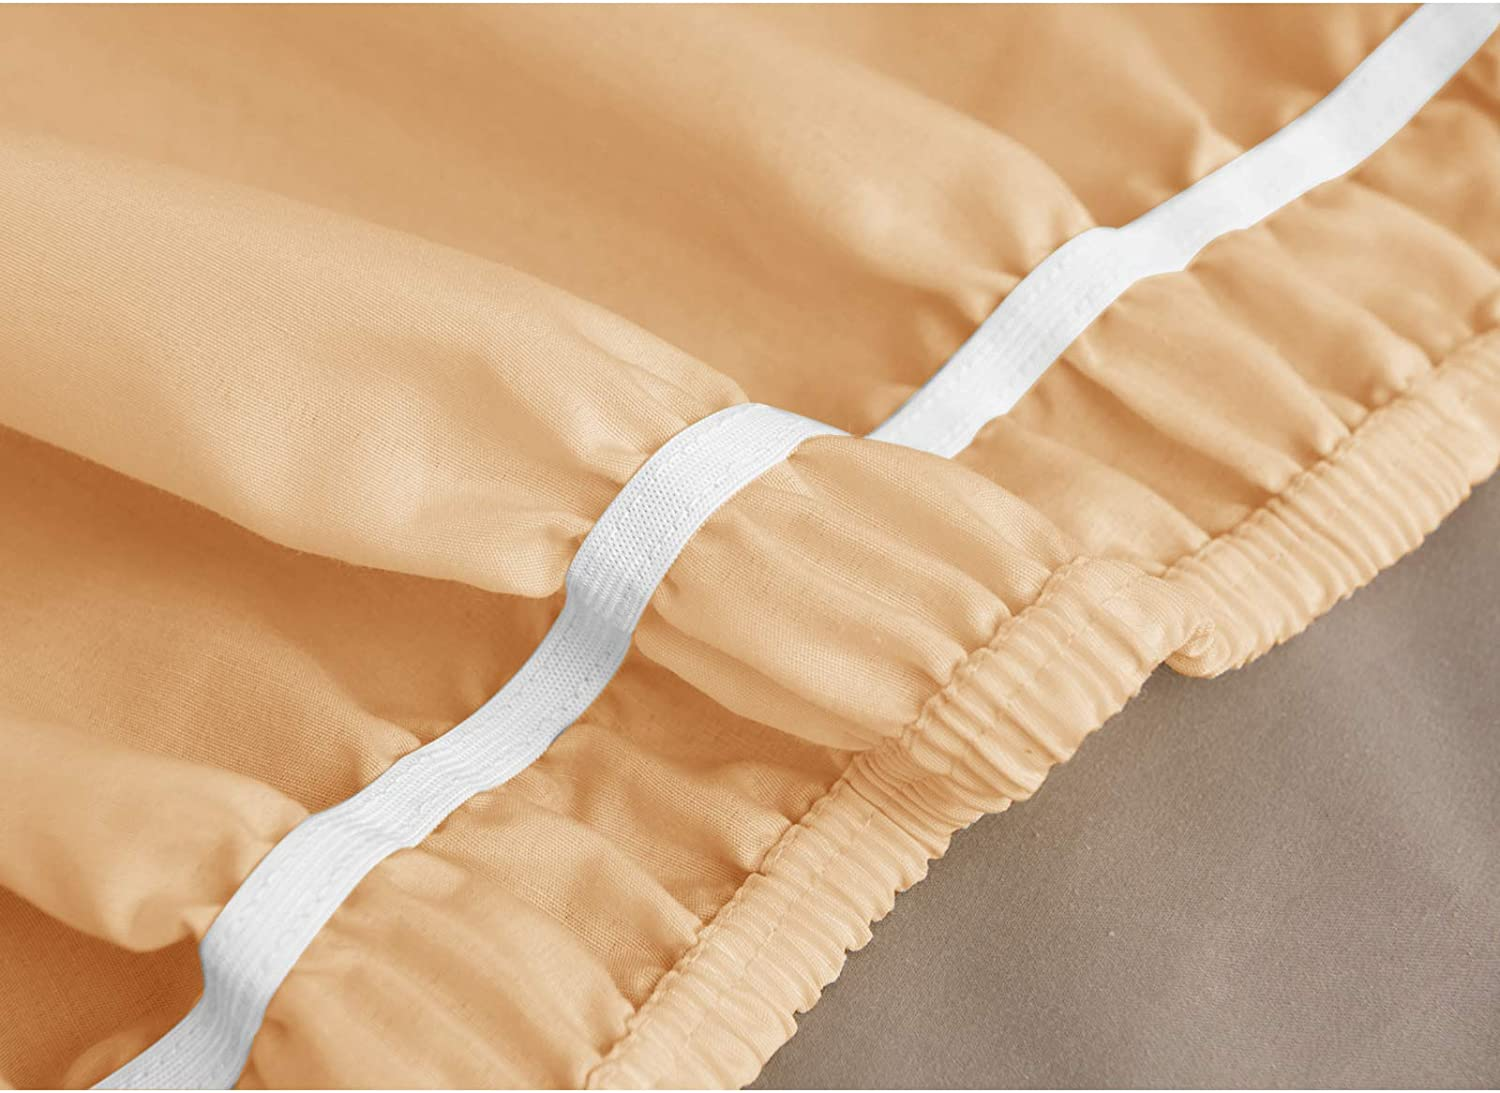 Obytex Wrap Around Bed Skirts Cotton Bedskirt Elastic Dust Ruffle Silky Soft /& Wrinkle Free Classic Stylish Look in Your Bedroom